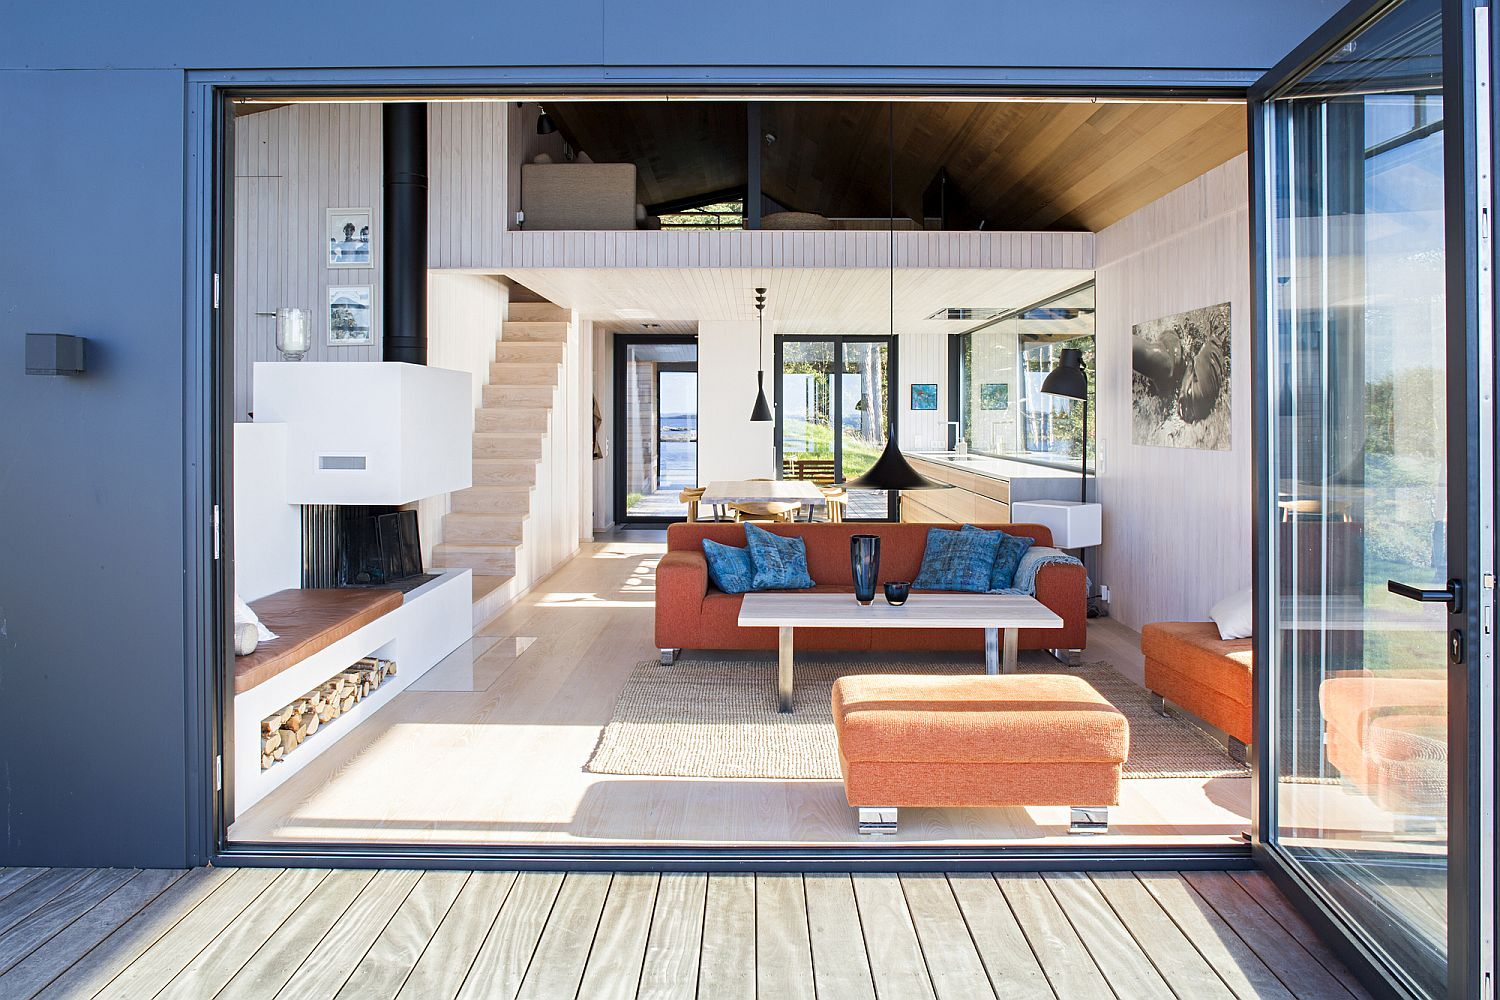 Folding-glass-doors-open-up-the-living-area-to-the-deck-outside